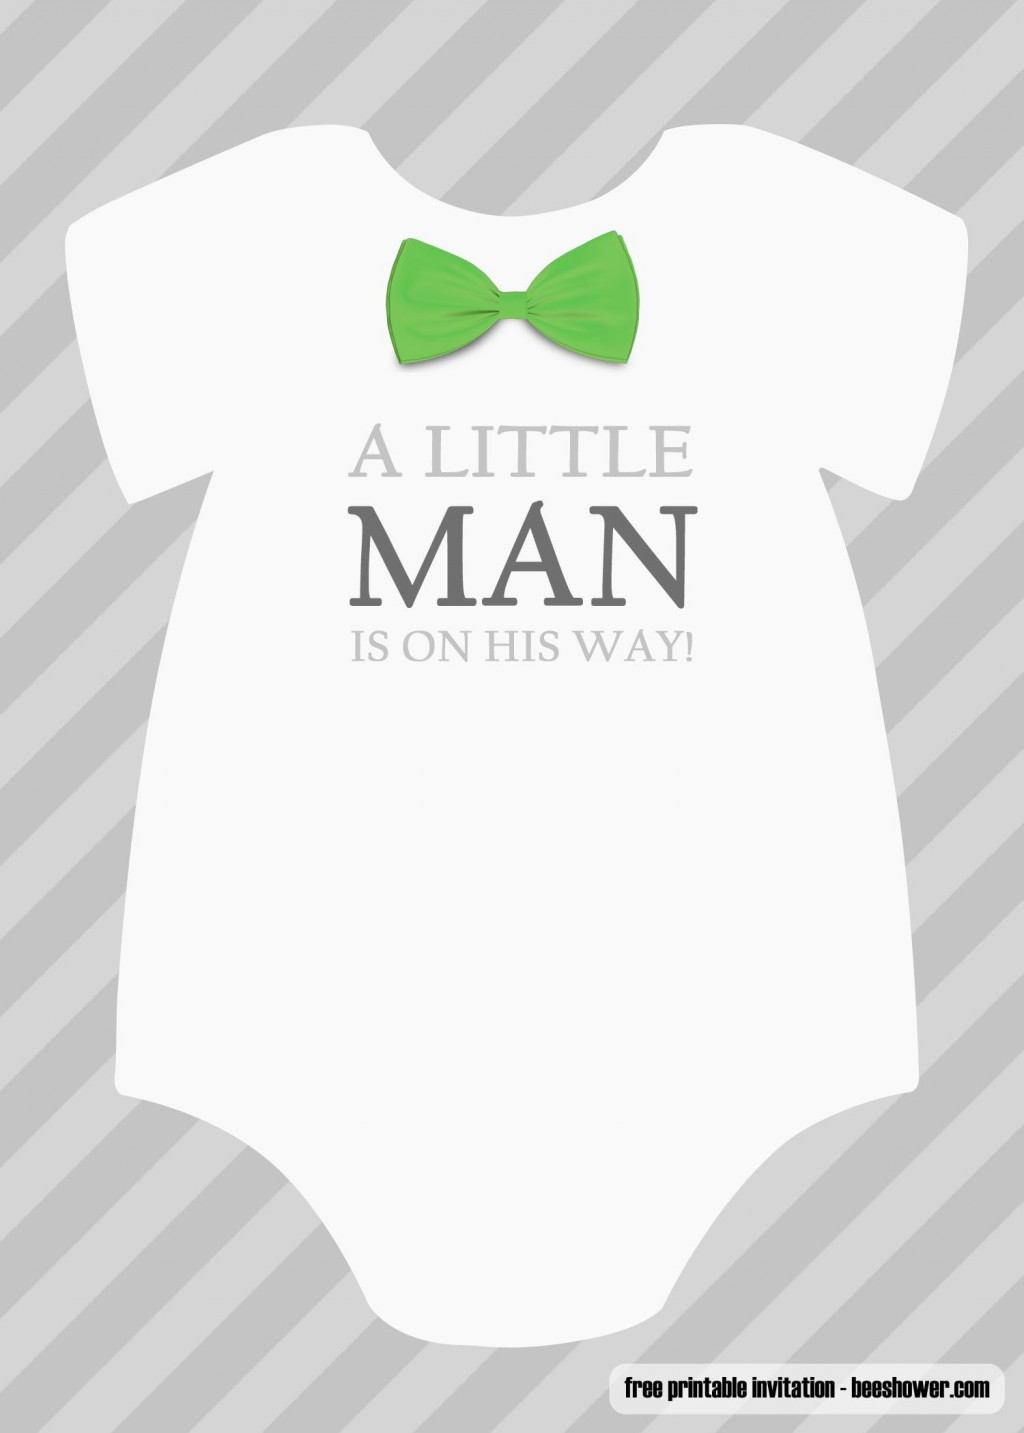 003 Archaicawful Free Baby Shower Invitation Template For Boy Concept Large